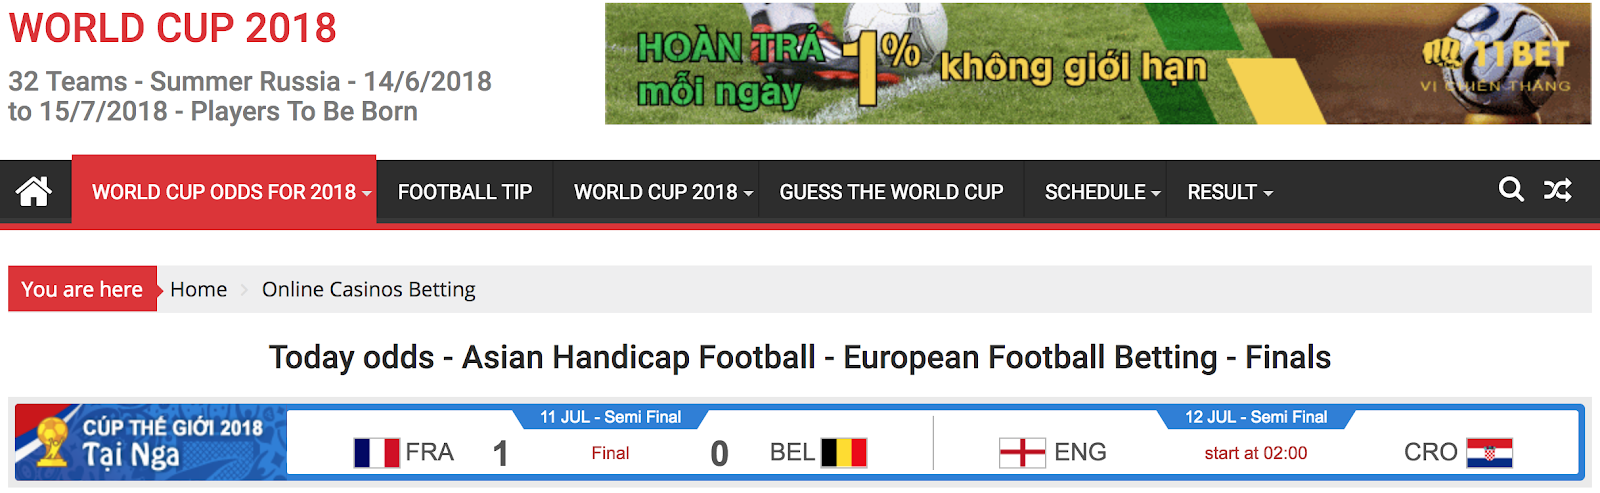 Spambot aims at targets WordPress sites in World Cup-Themed spam scam